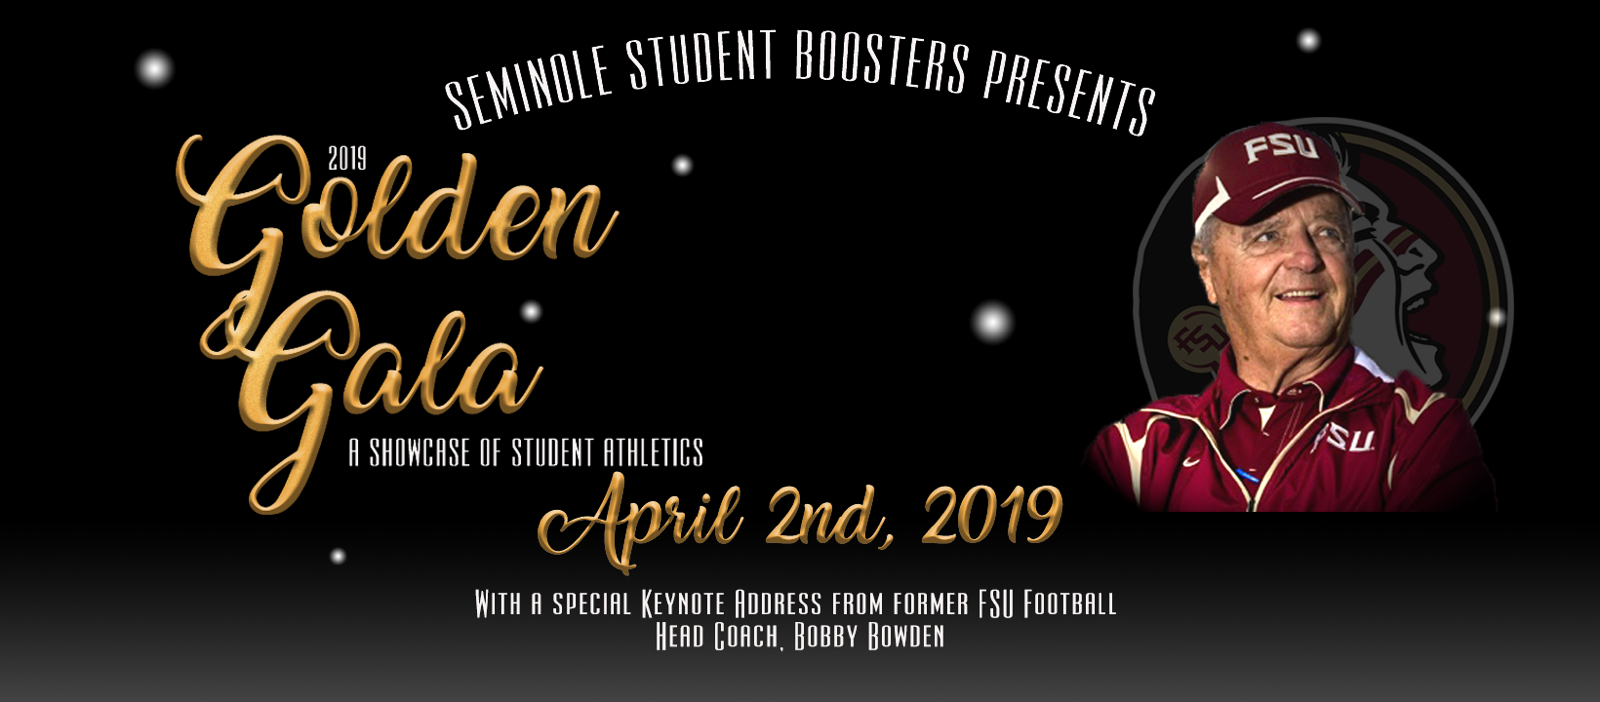 Seminole Student Boosters Presents Golden Gala